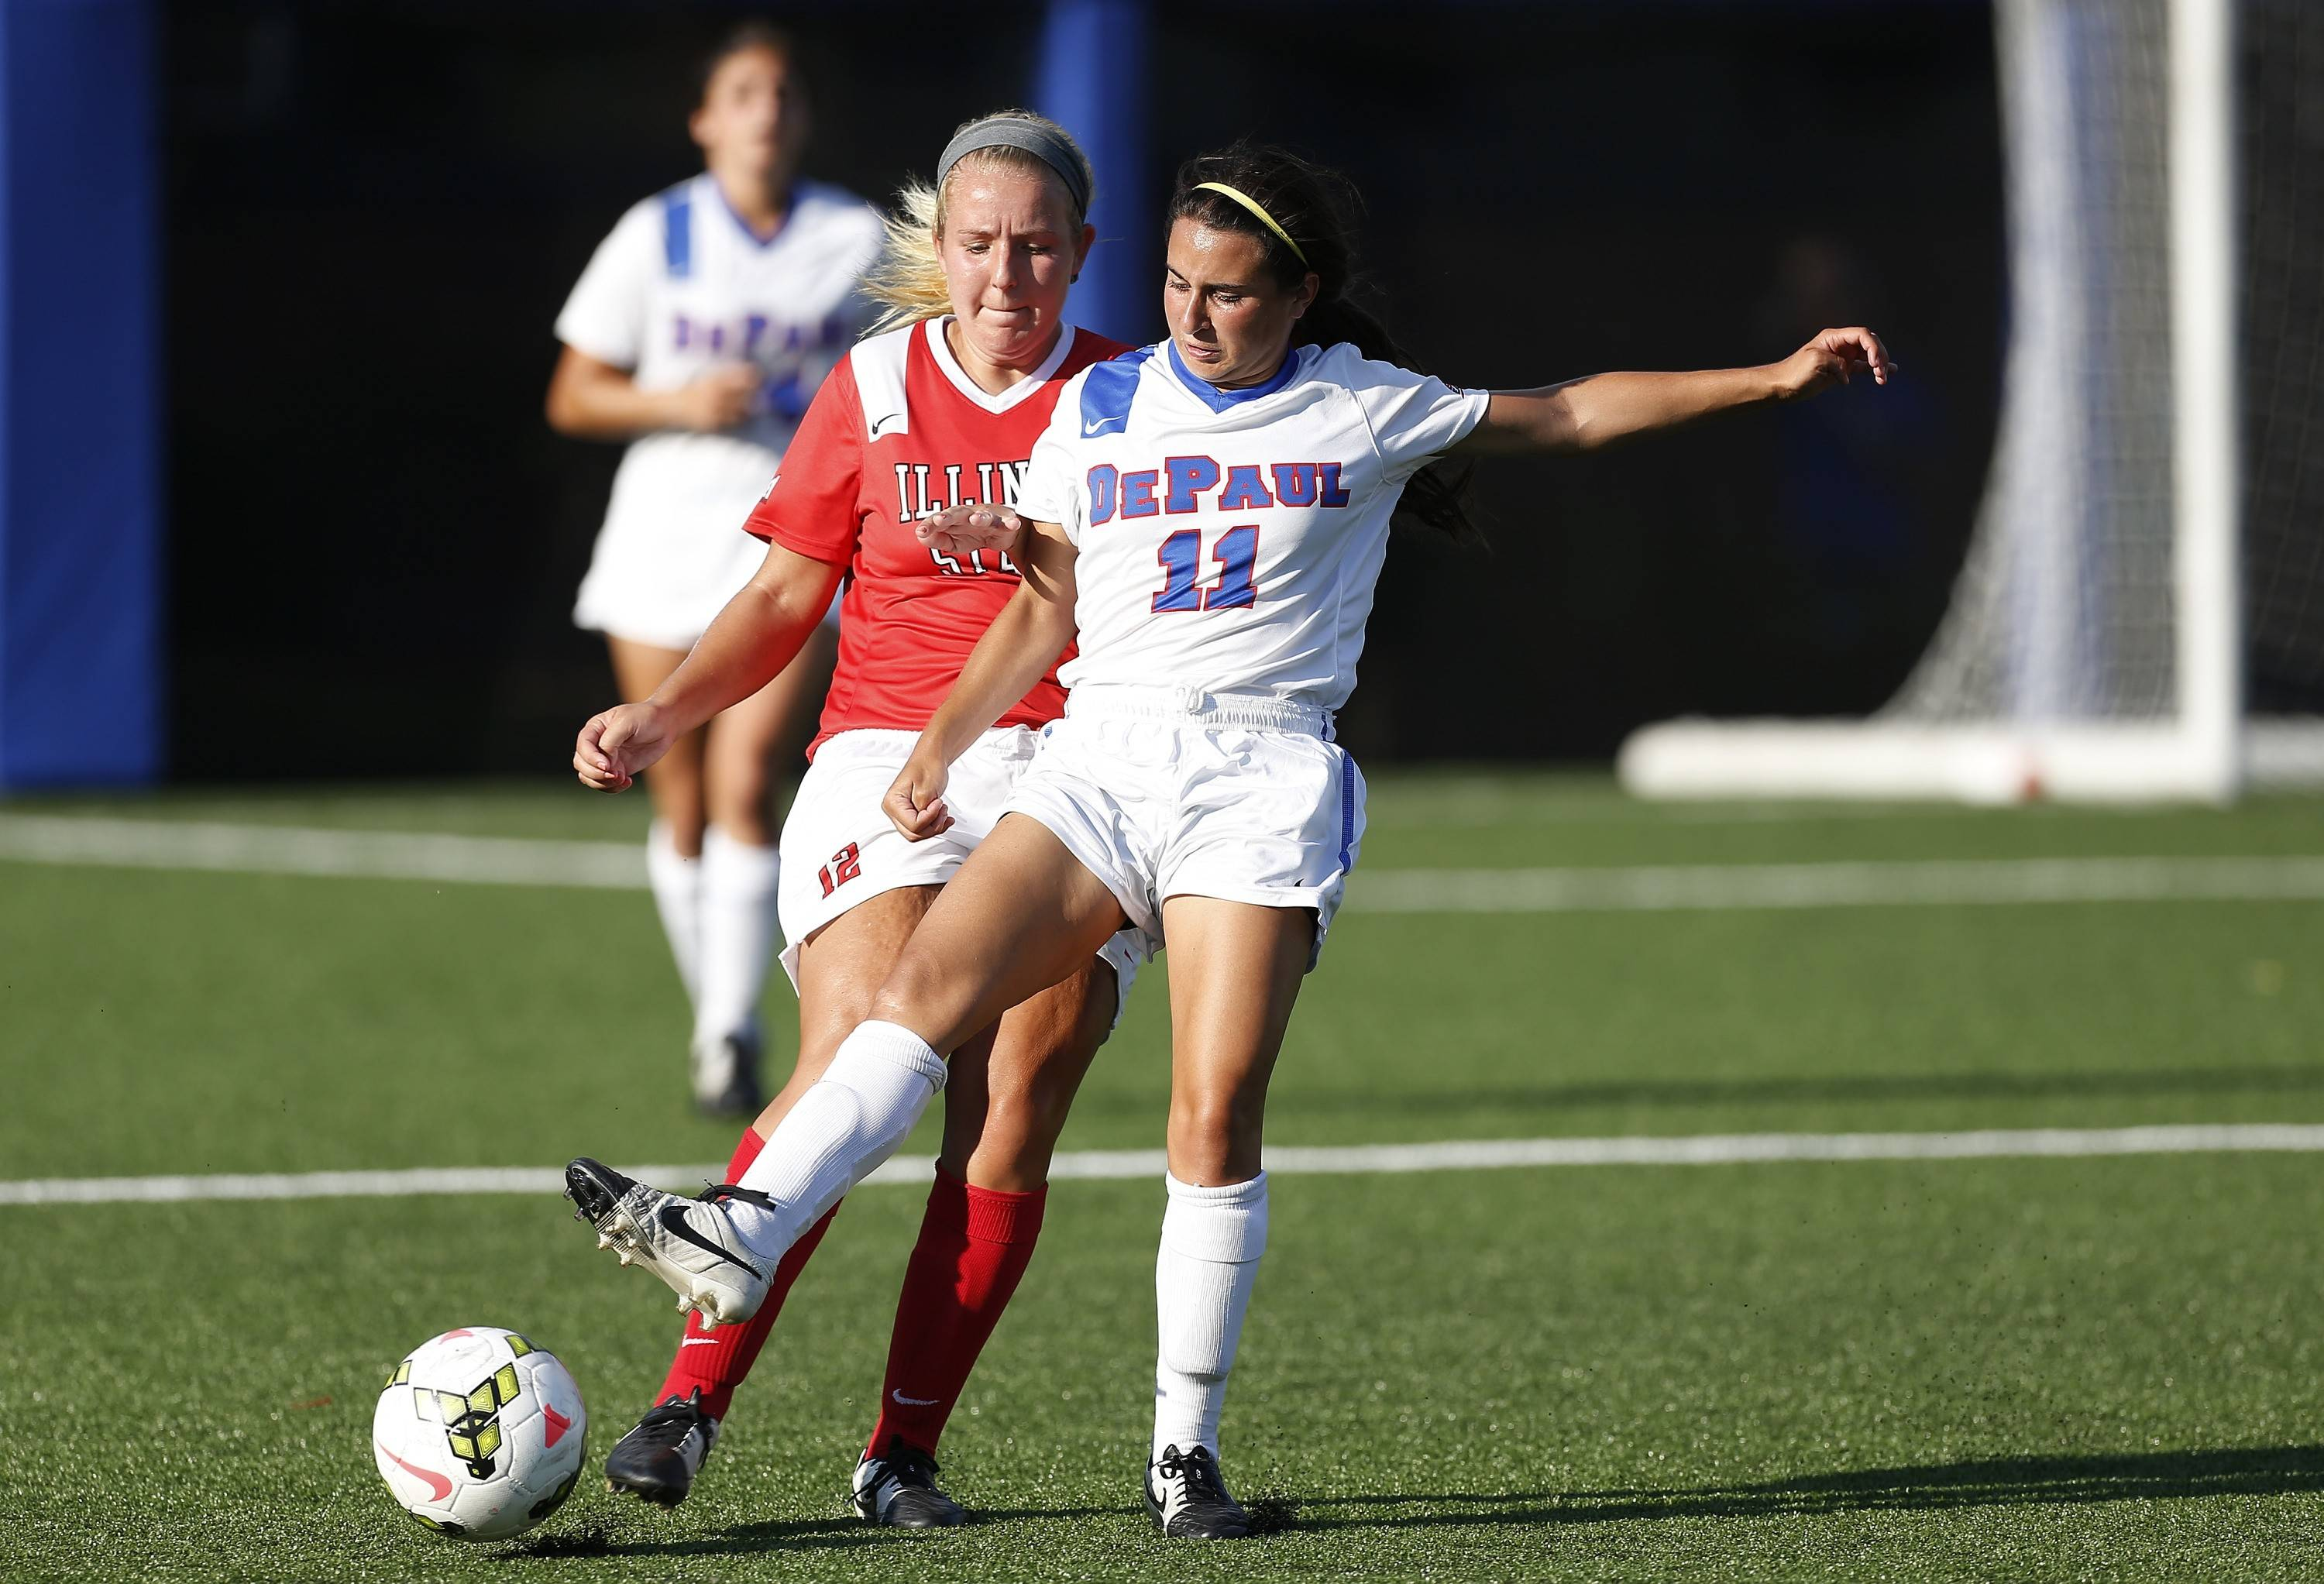 Alexa Ben of DePaul was named to a national watch list of top college soccer players. The Schaumburg native is a senior midfielder at DePaul.